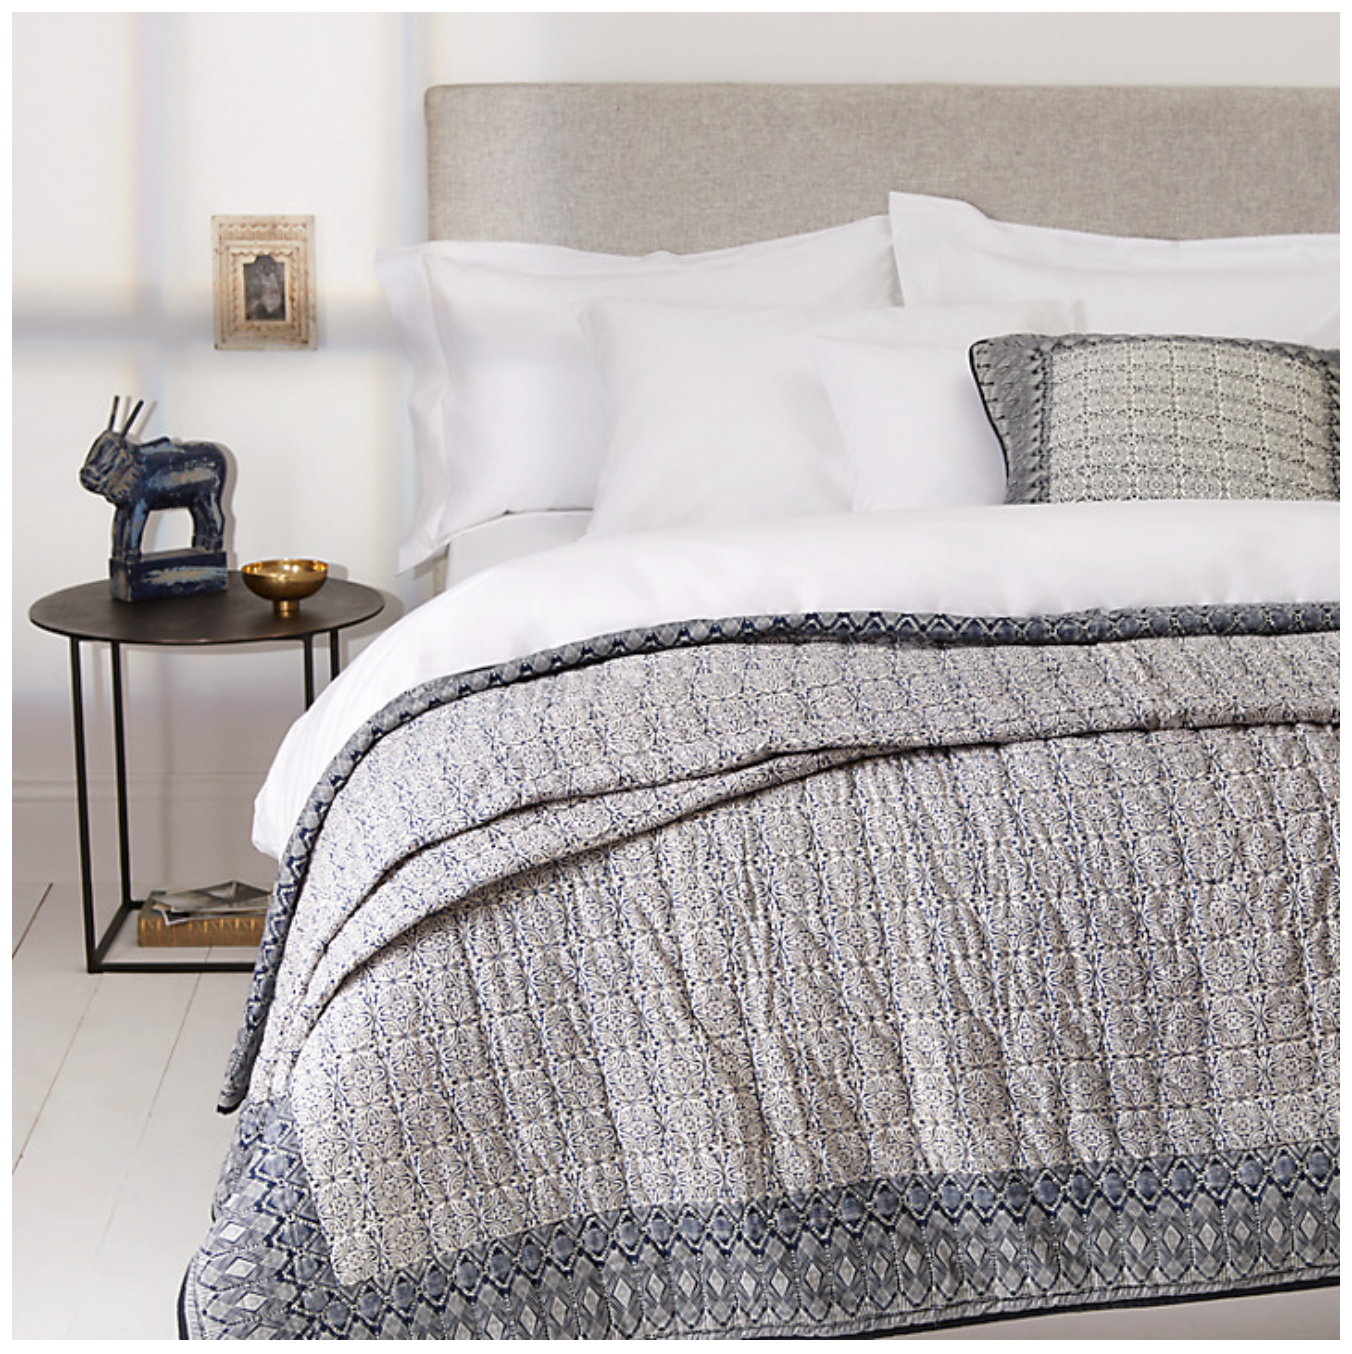 John Lewis Aztec print quilt and pillow Bed spreads